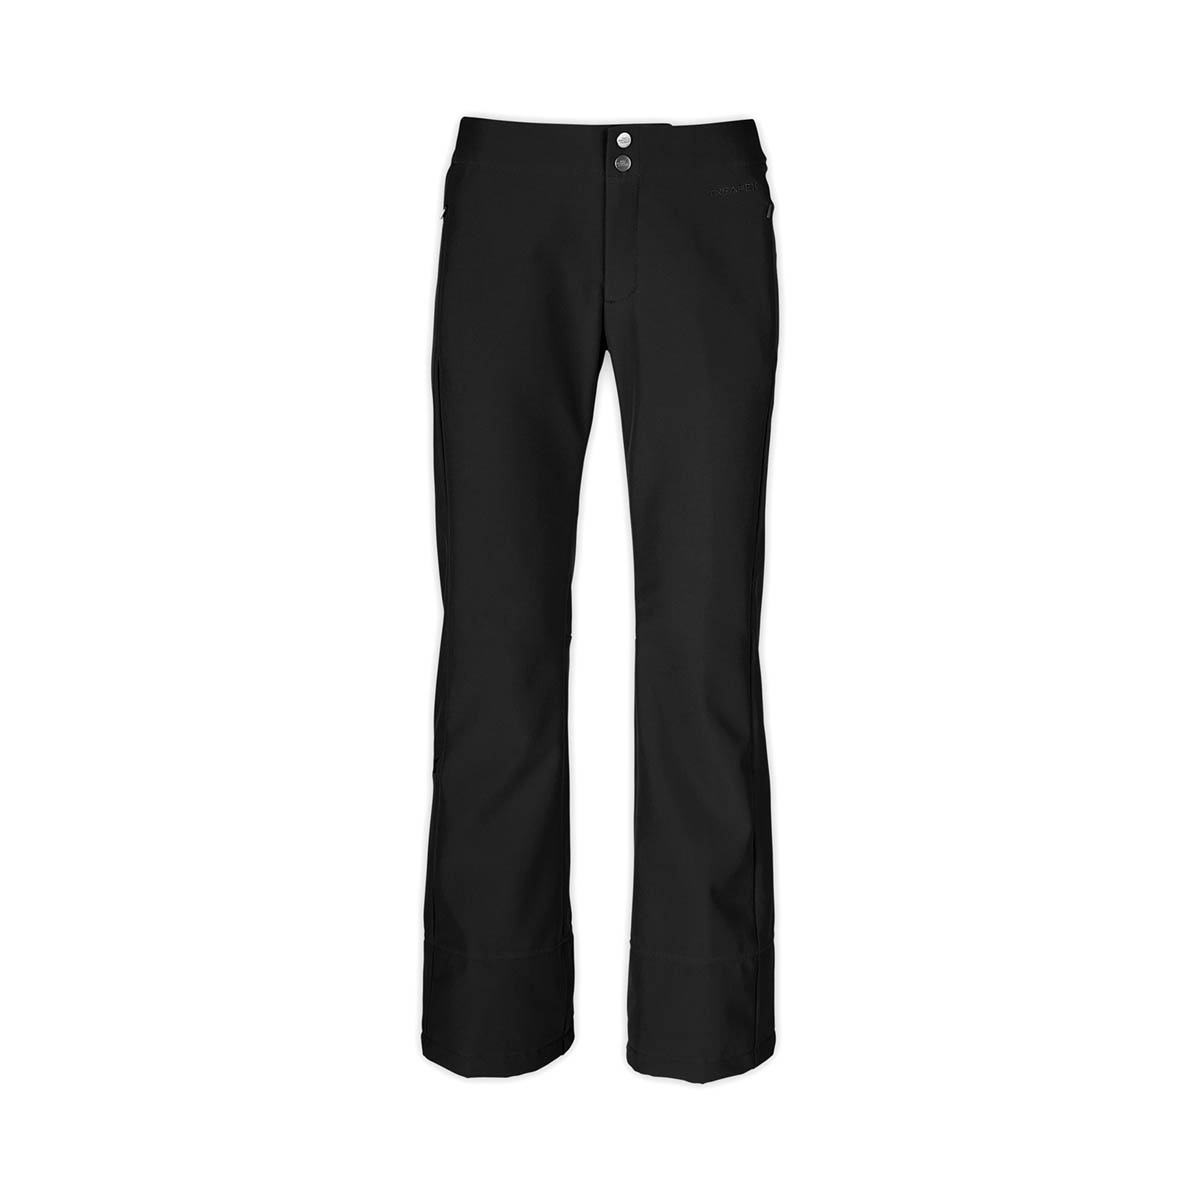 THE NORTH FACE - SLIM FLARE LRBC